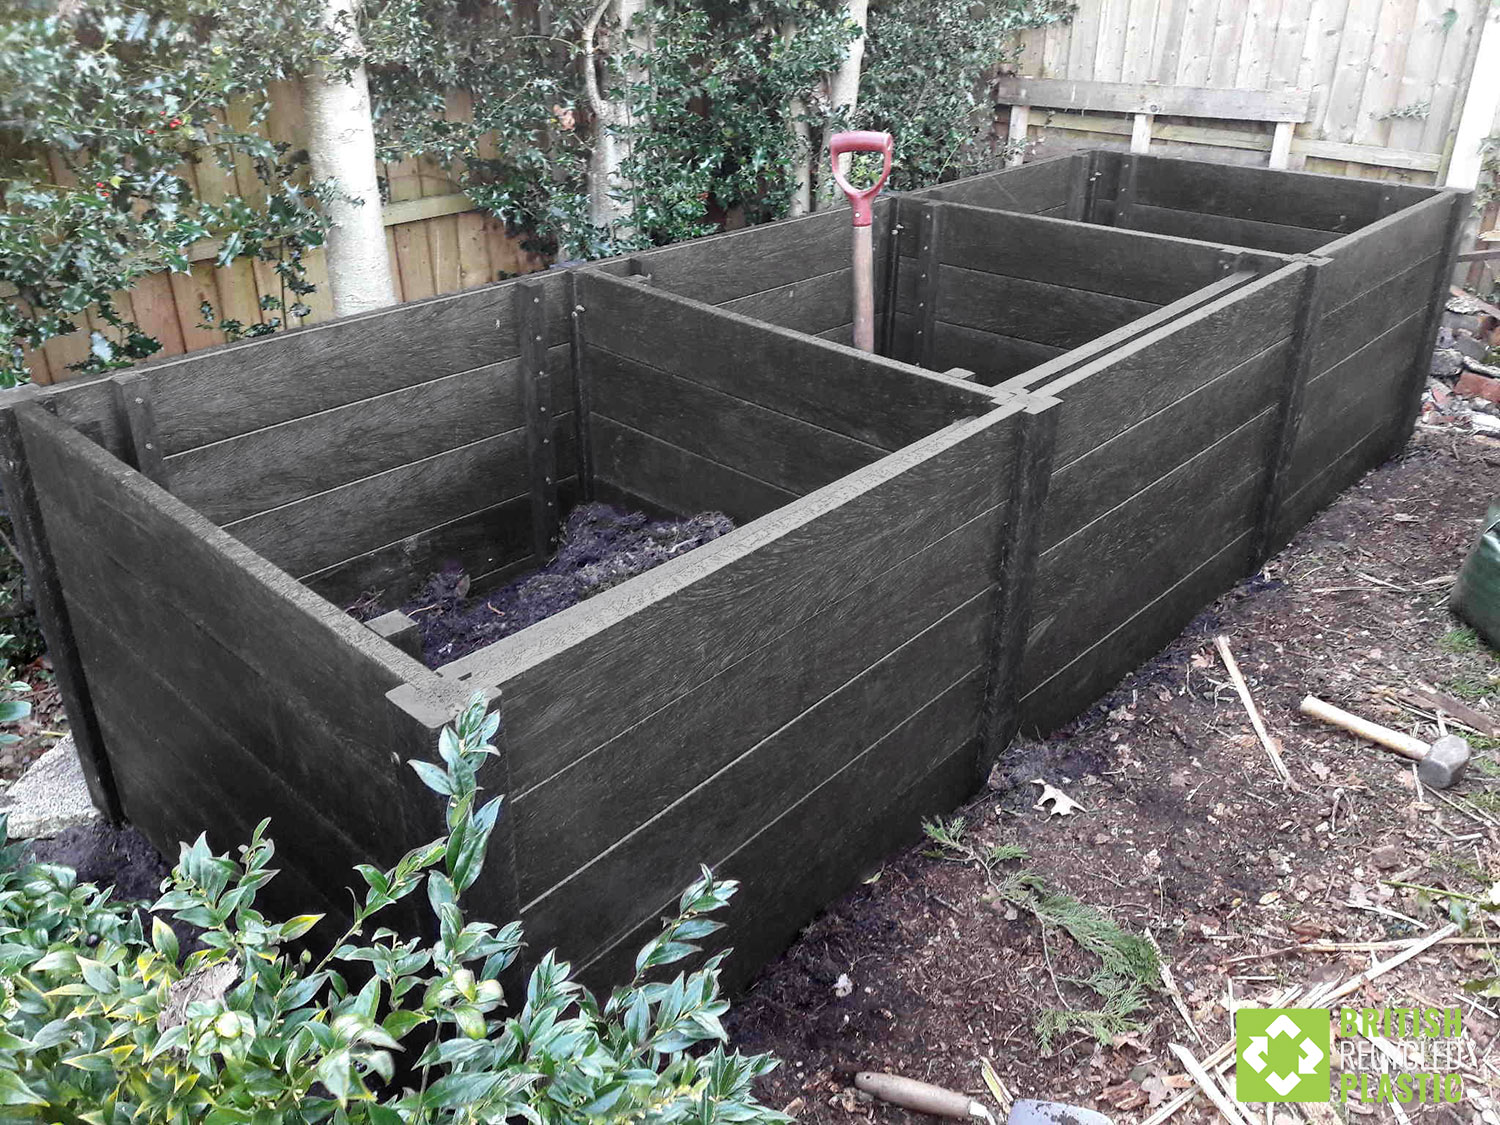 Compost bins made from from black recycled plastic for heat retention and maximum durability with a 25 year guarantee